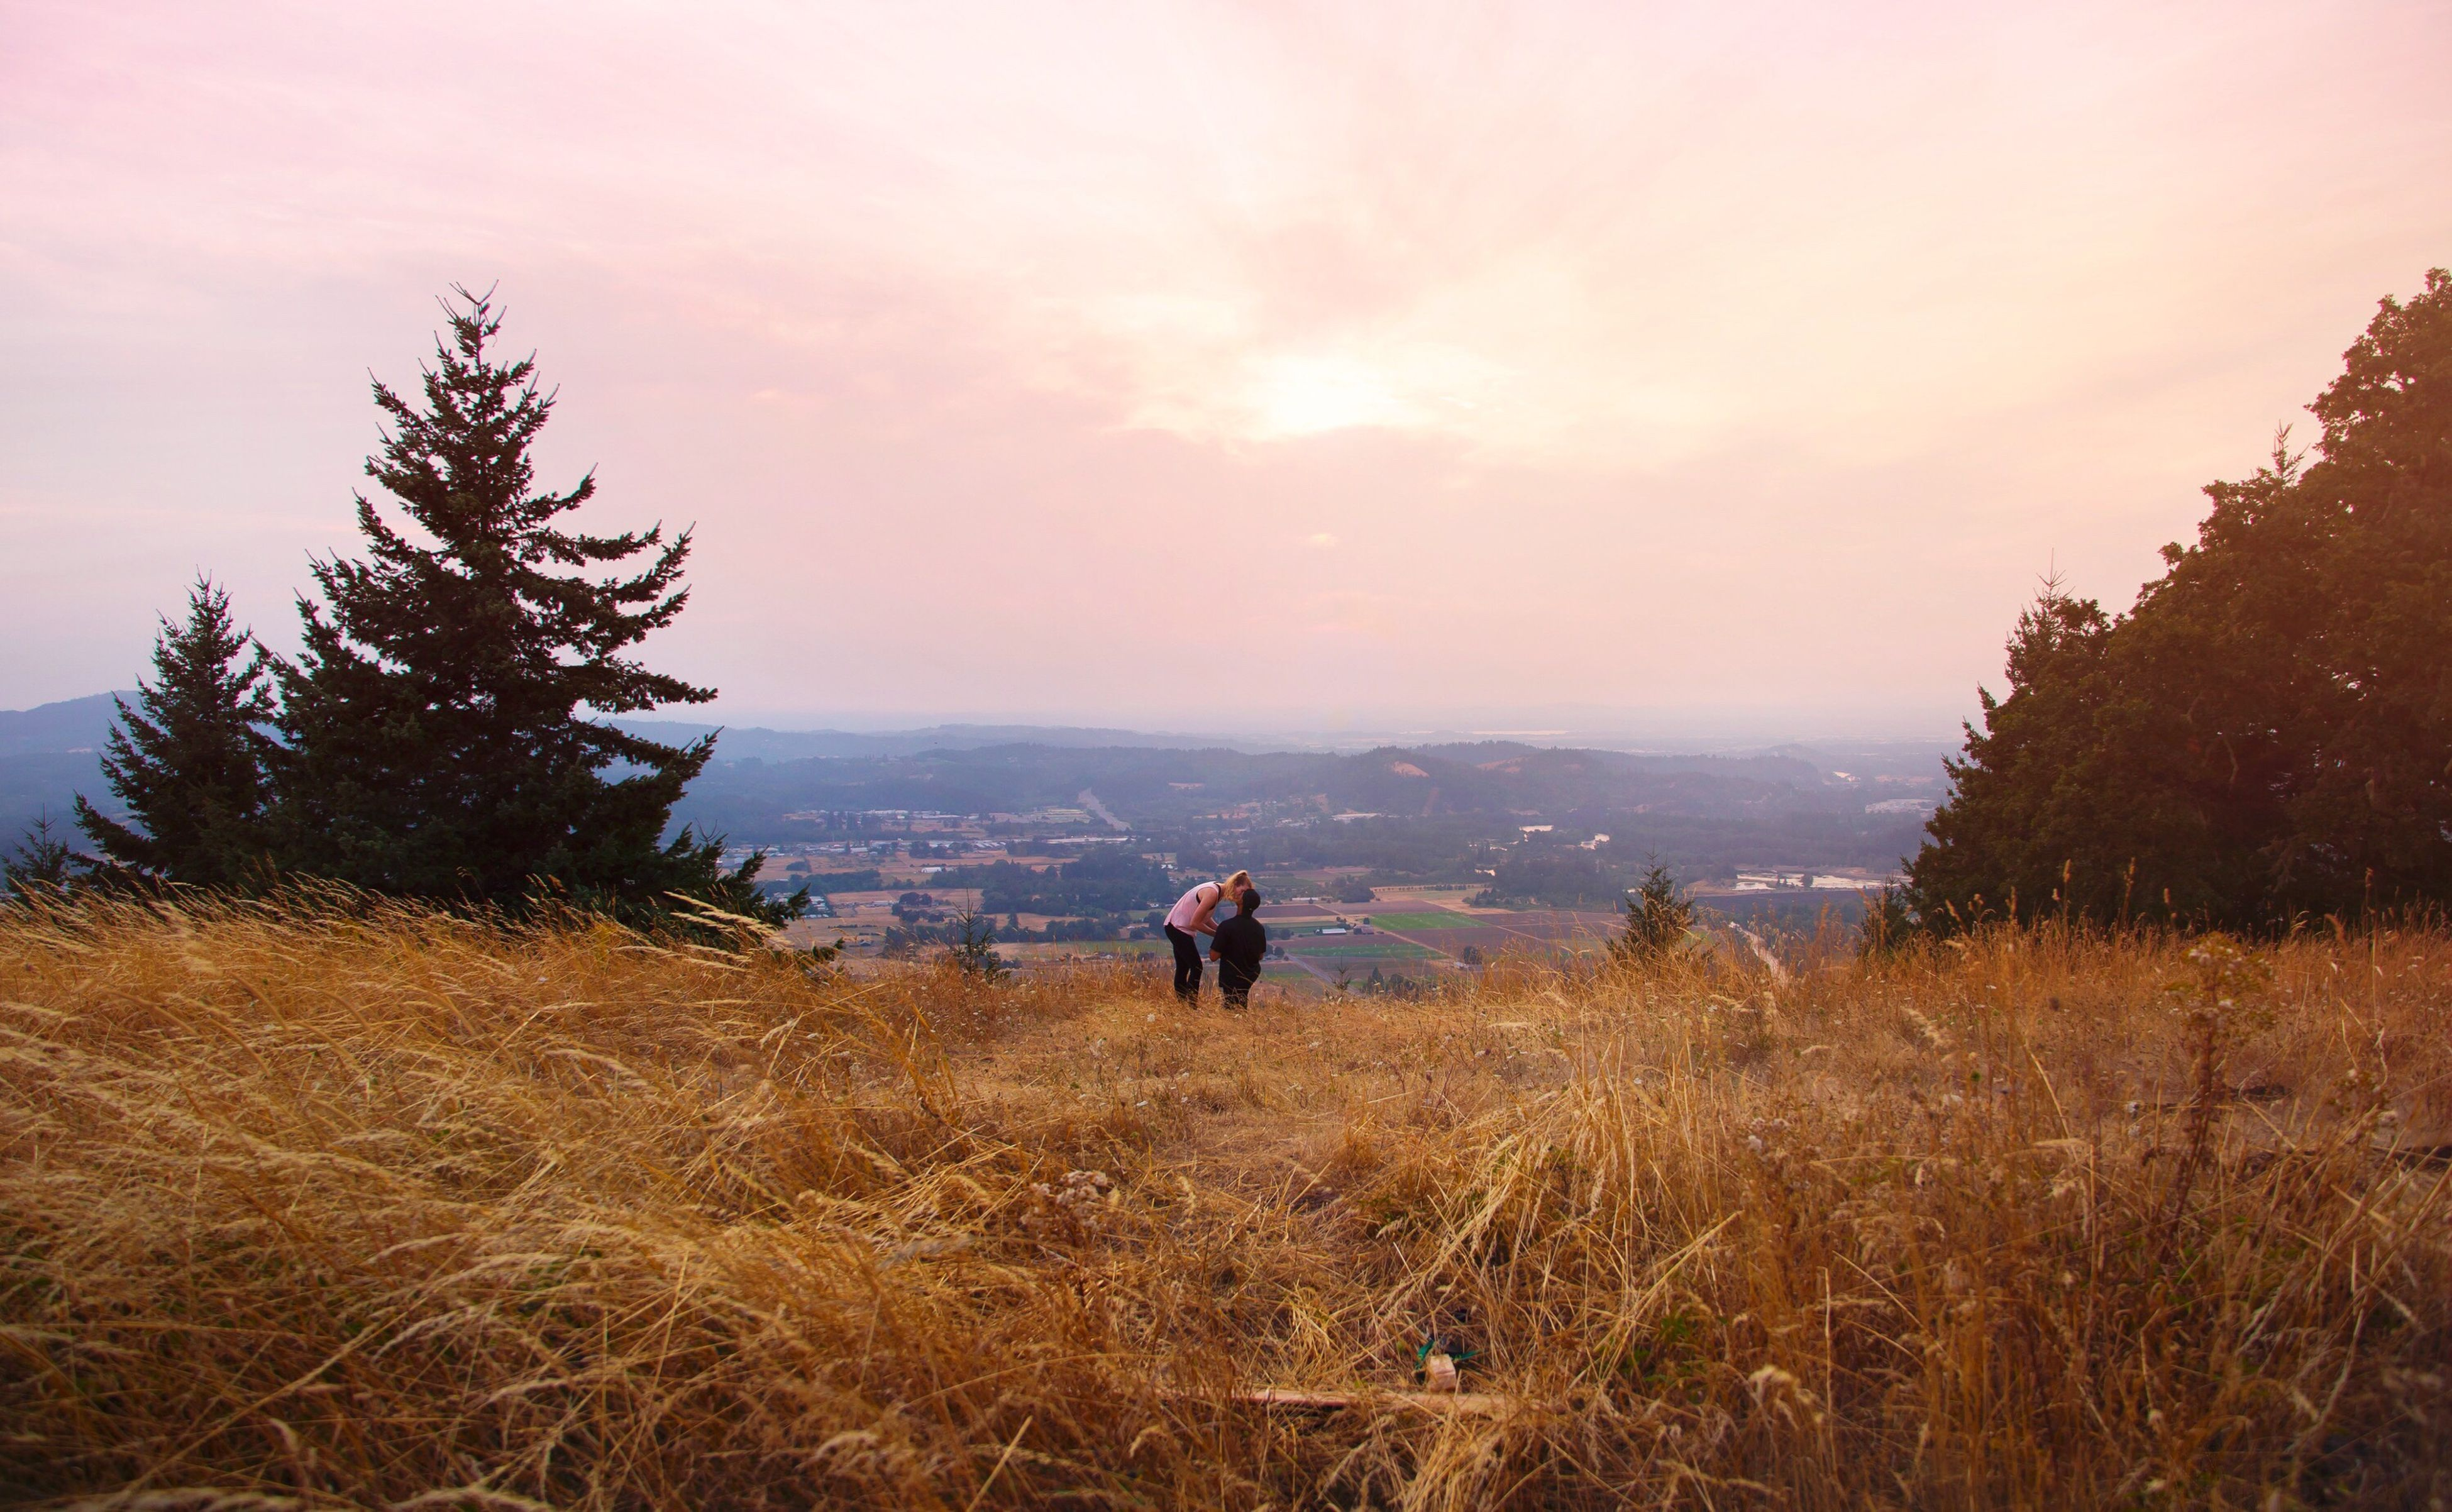 nature, real people, sunset, beauty in nature, one person, field, lifestyles, landscape, leisure activity, grass, sky, walking, scenics, tranquility, outdoors, men, mountain, growth, adventure, standing, tree, day, people